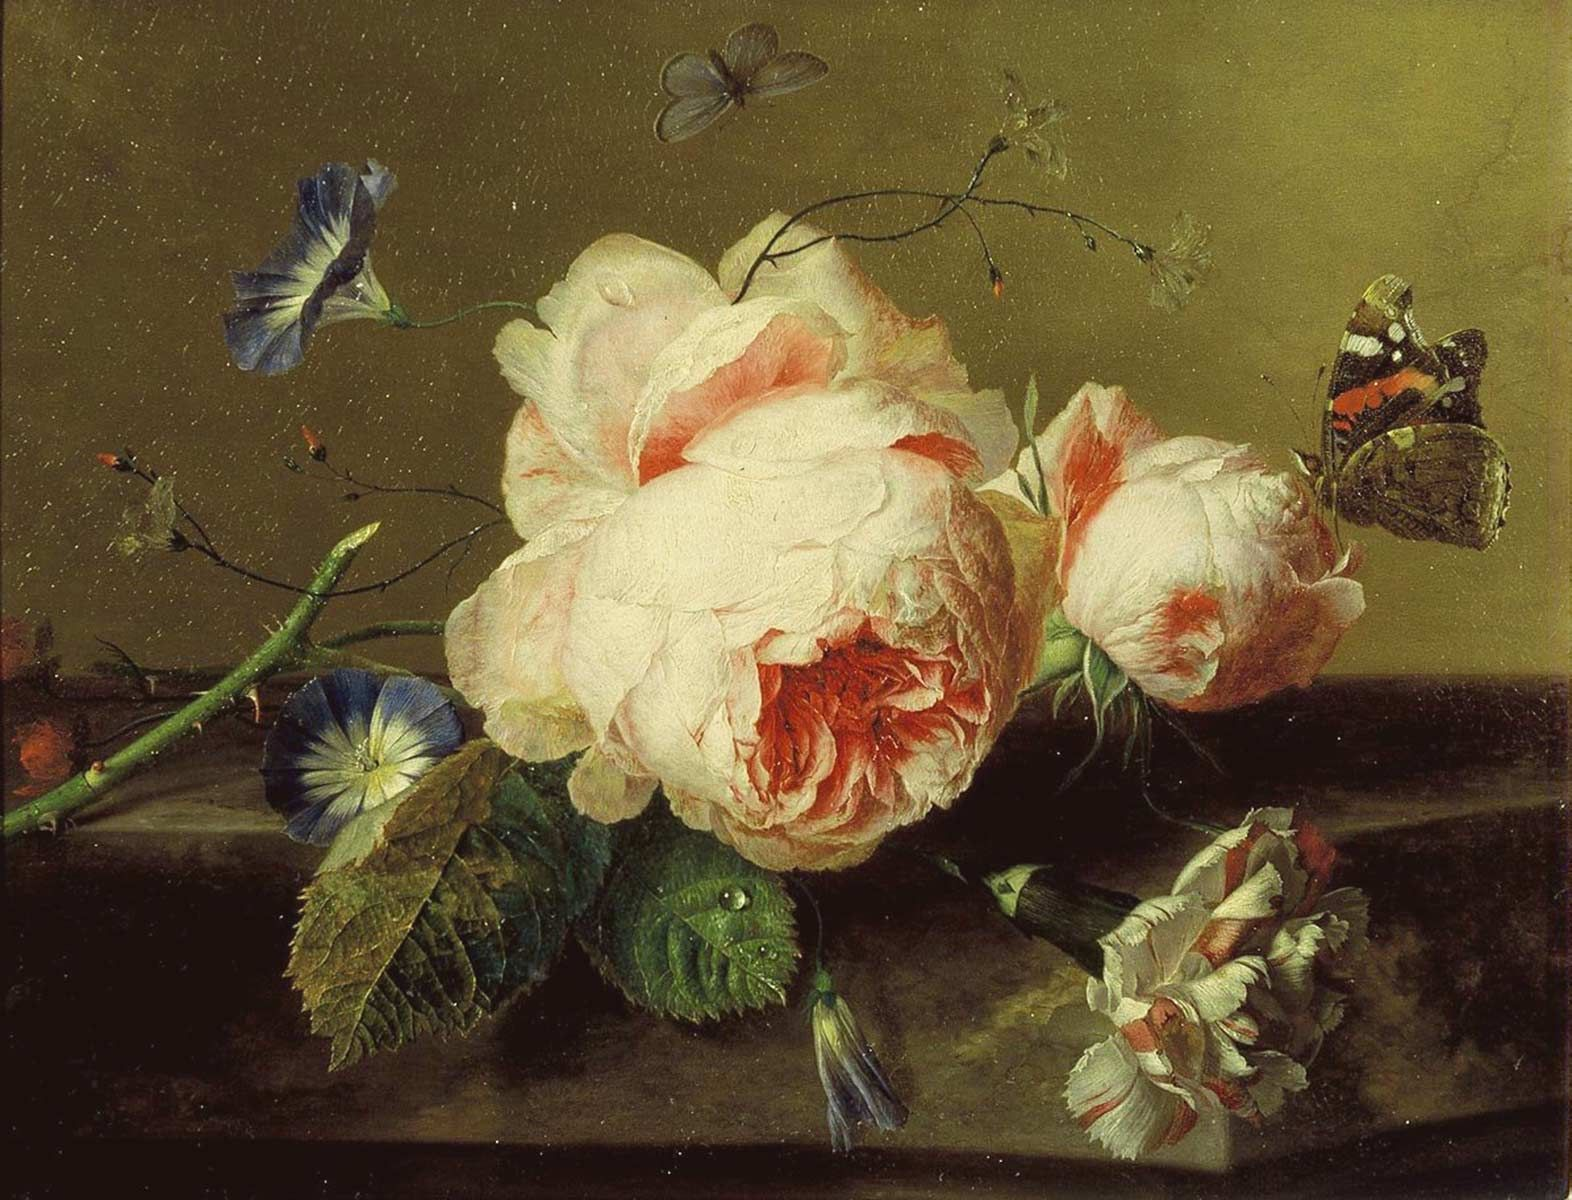 """Detail from a Jan Van Huysum still life included in """"Memory of the Netherlands"""" exhibit, Mauritshuis, The Hague."""